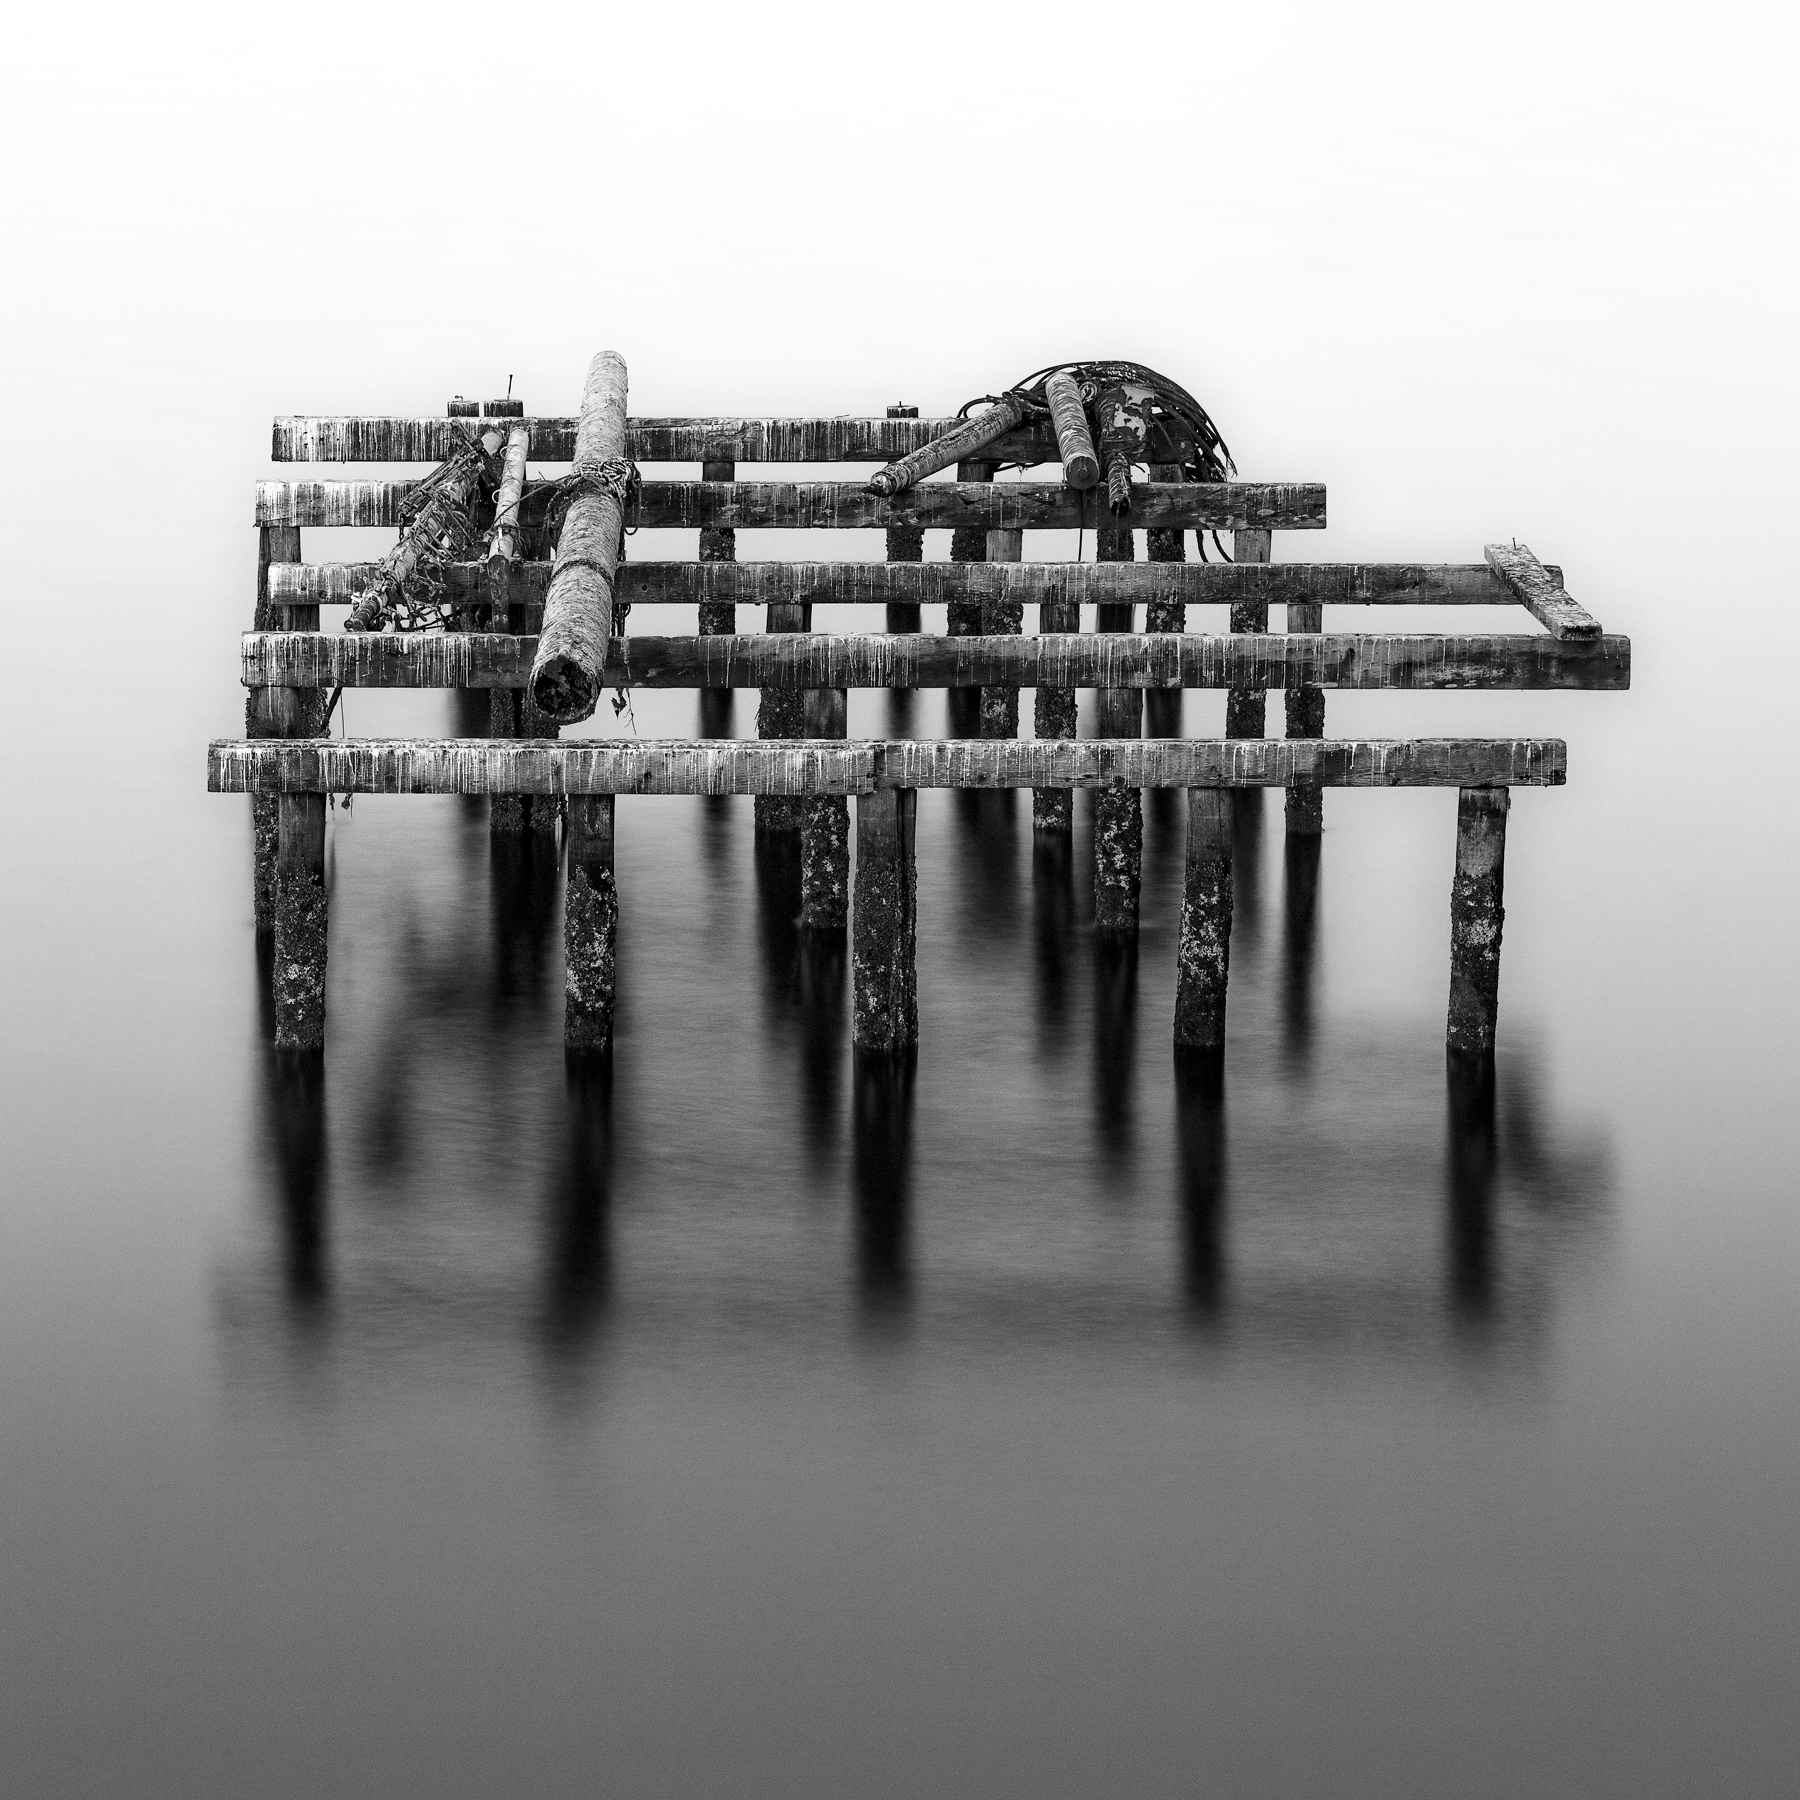 end-of-harbor-pilings.jpg